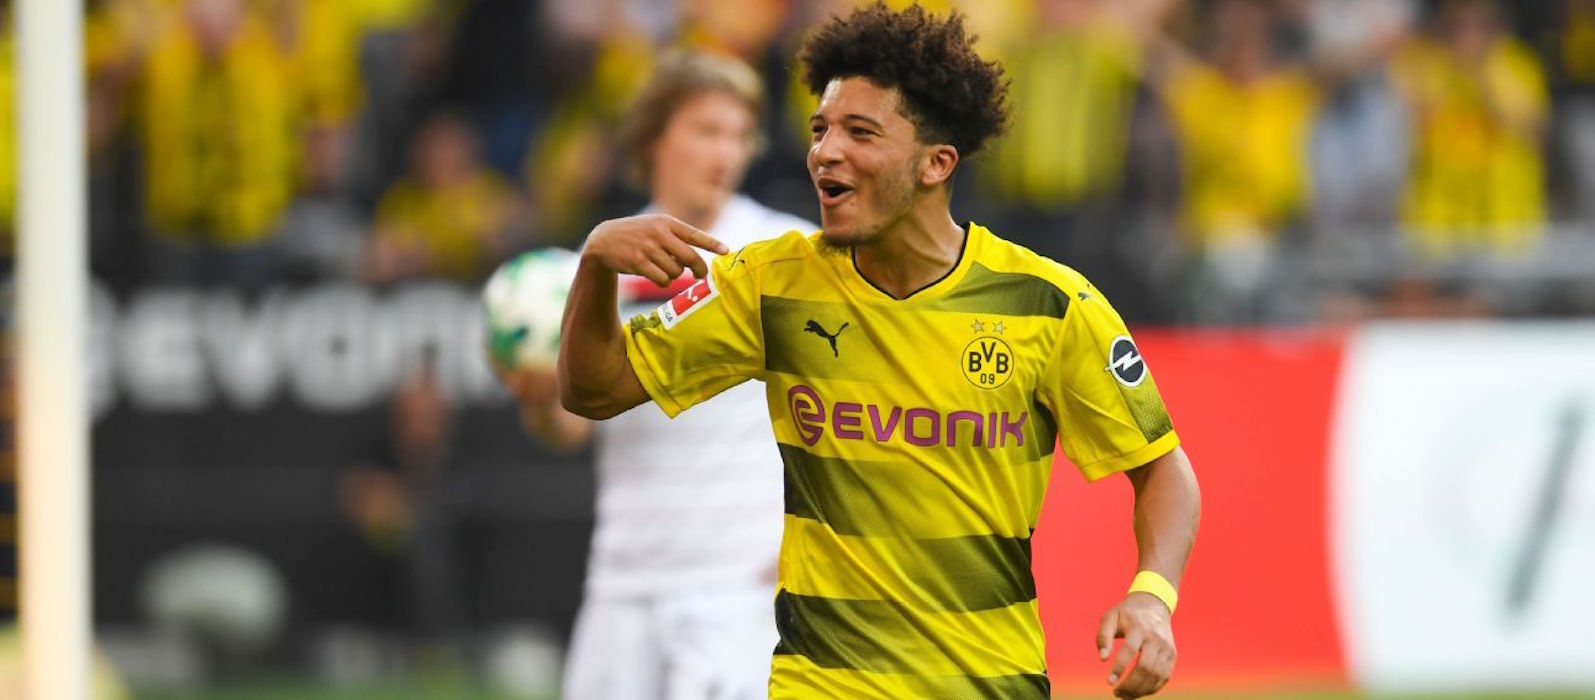 Sky Sports: Manchester United target Jadon Sancho will not leave Borussia Dortmund